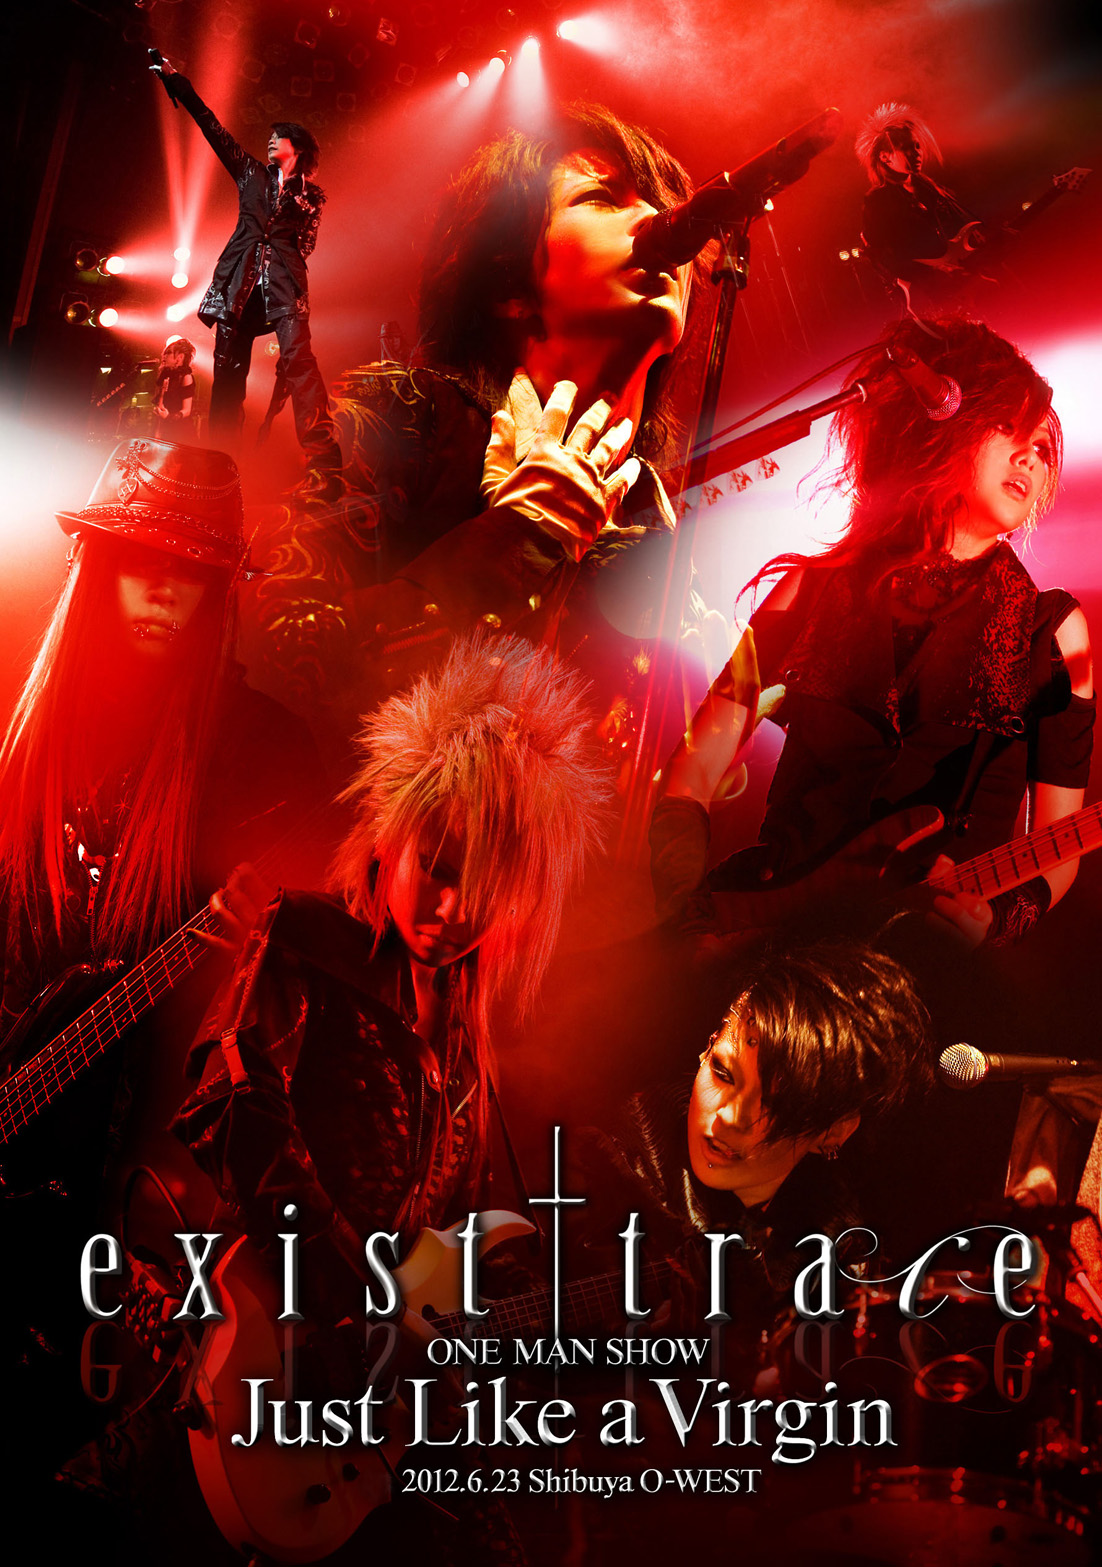 JRock247-exist-trace-Just-Like-A-Virgin-DVD-jacket-Nico-Nico-Live